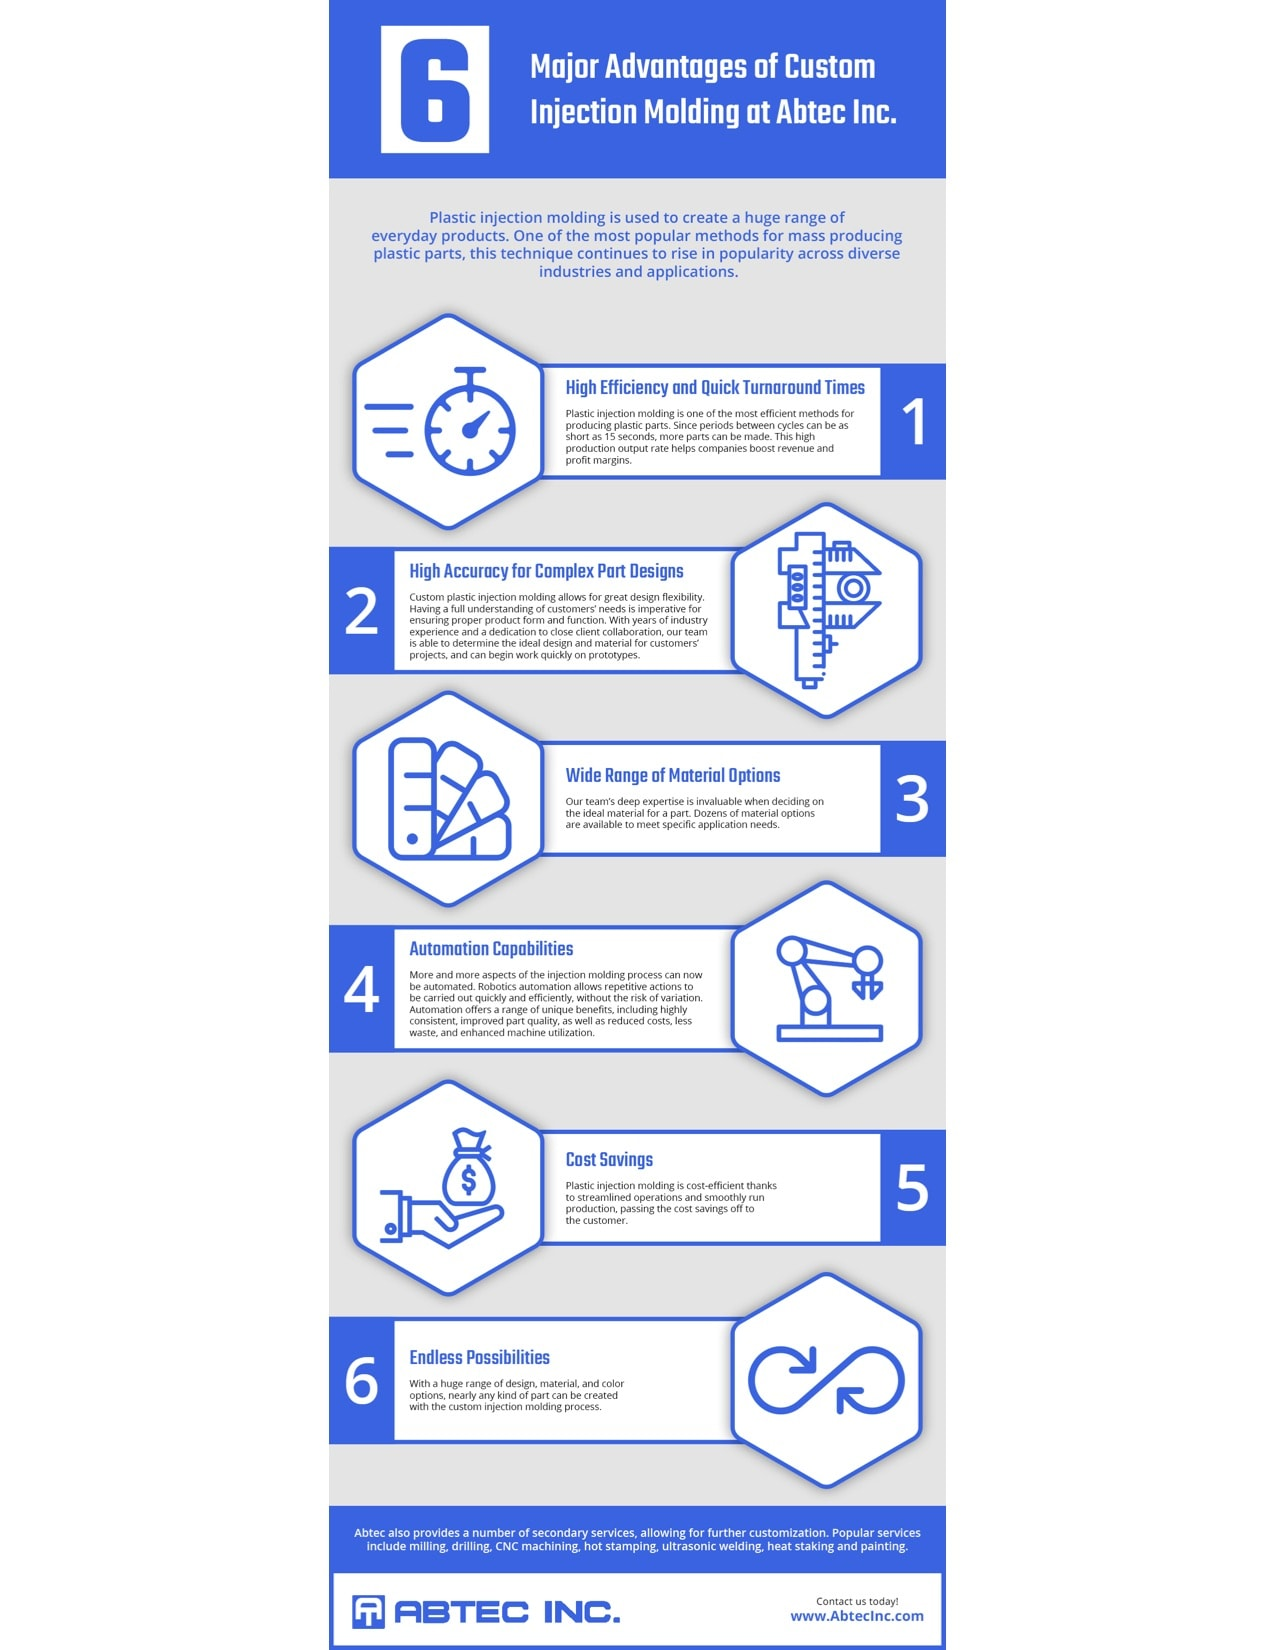 infographic for advantages of custom injection molding plastic